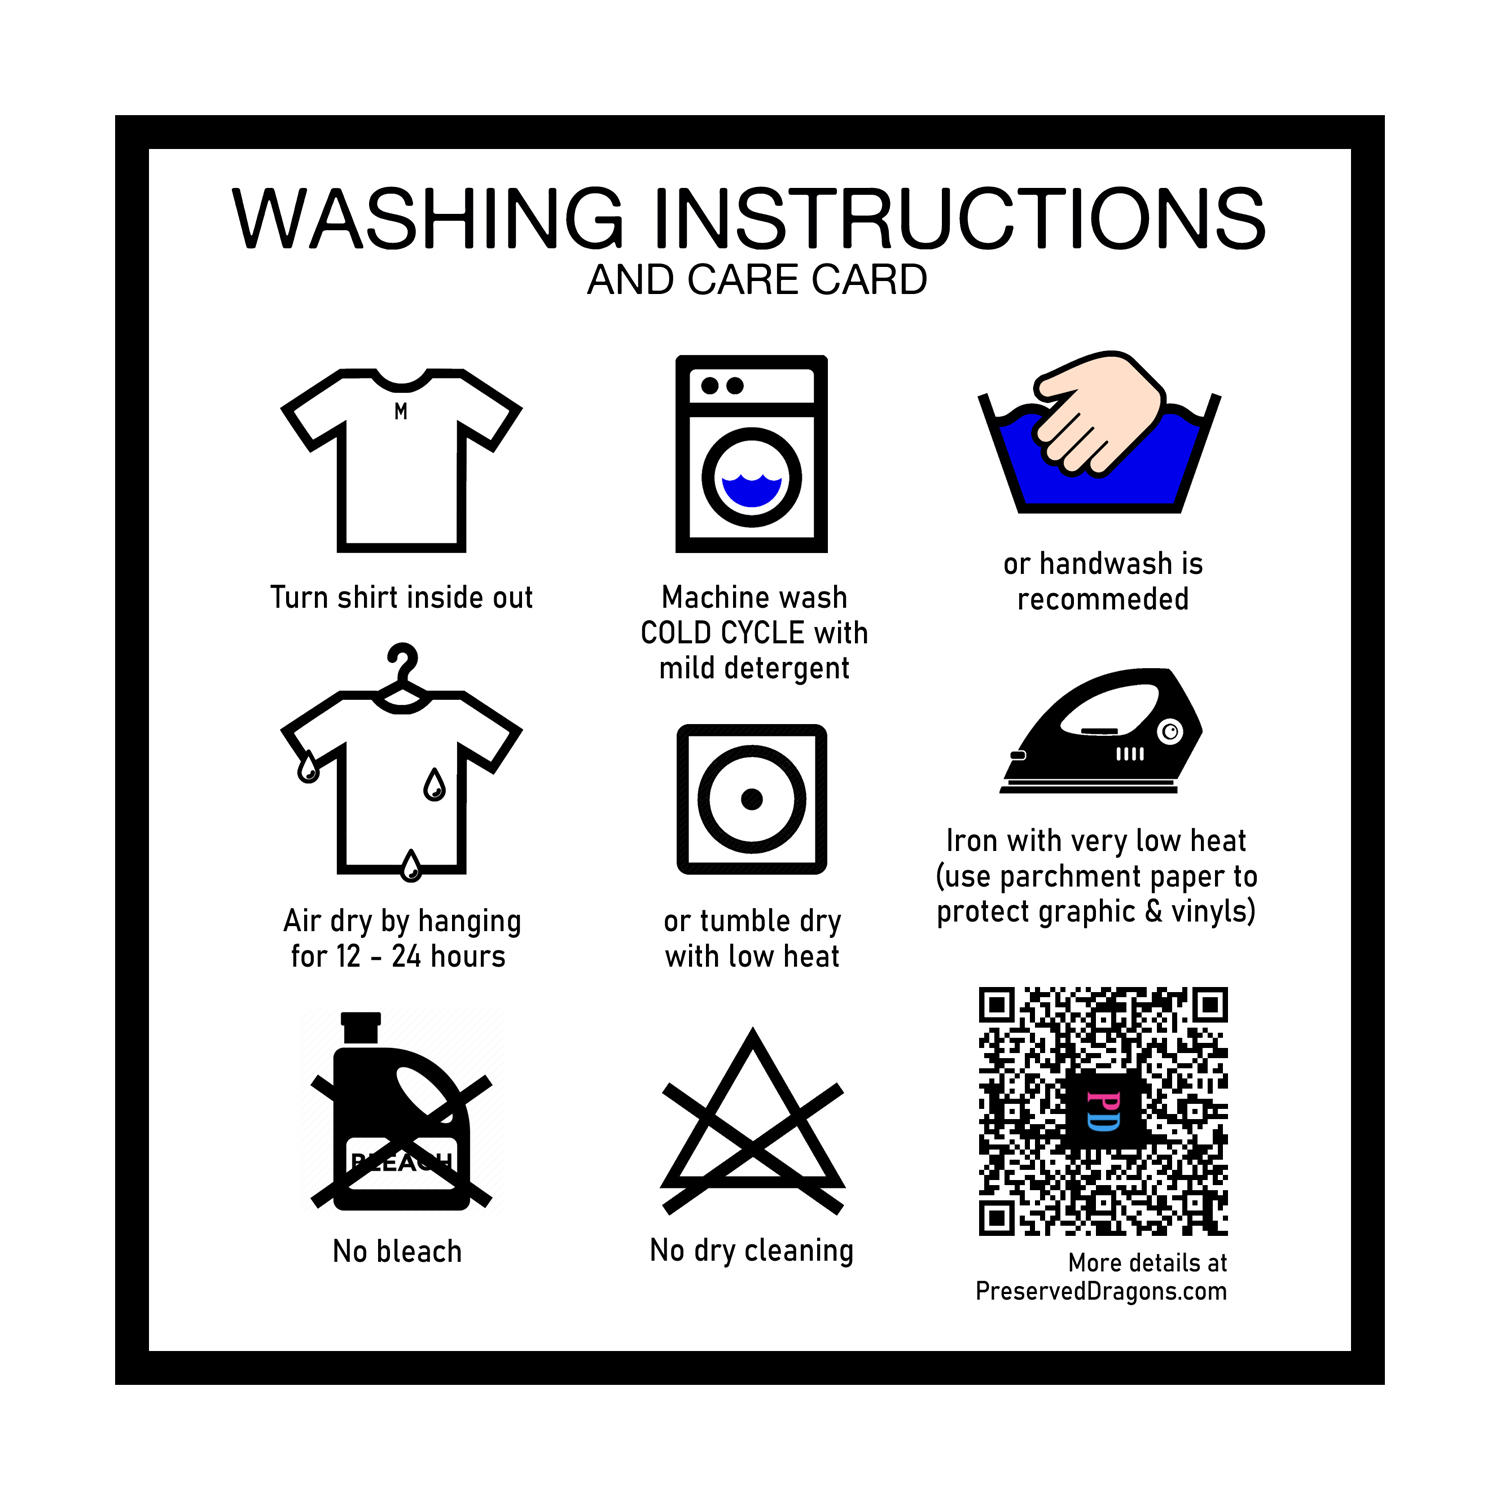 washing instructions and care card